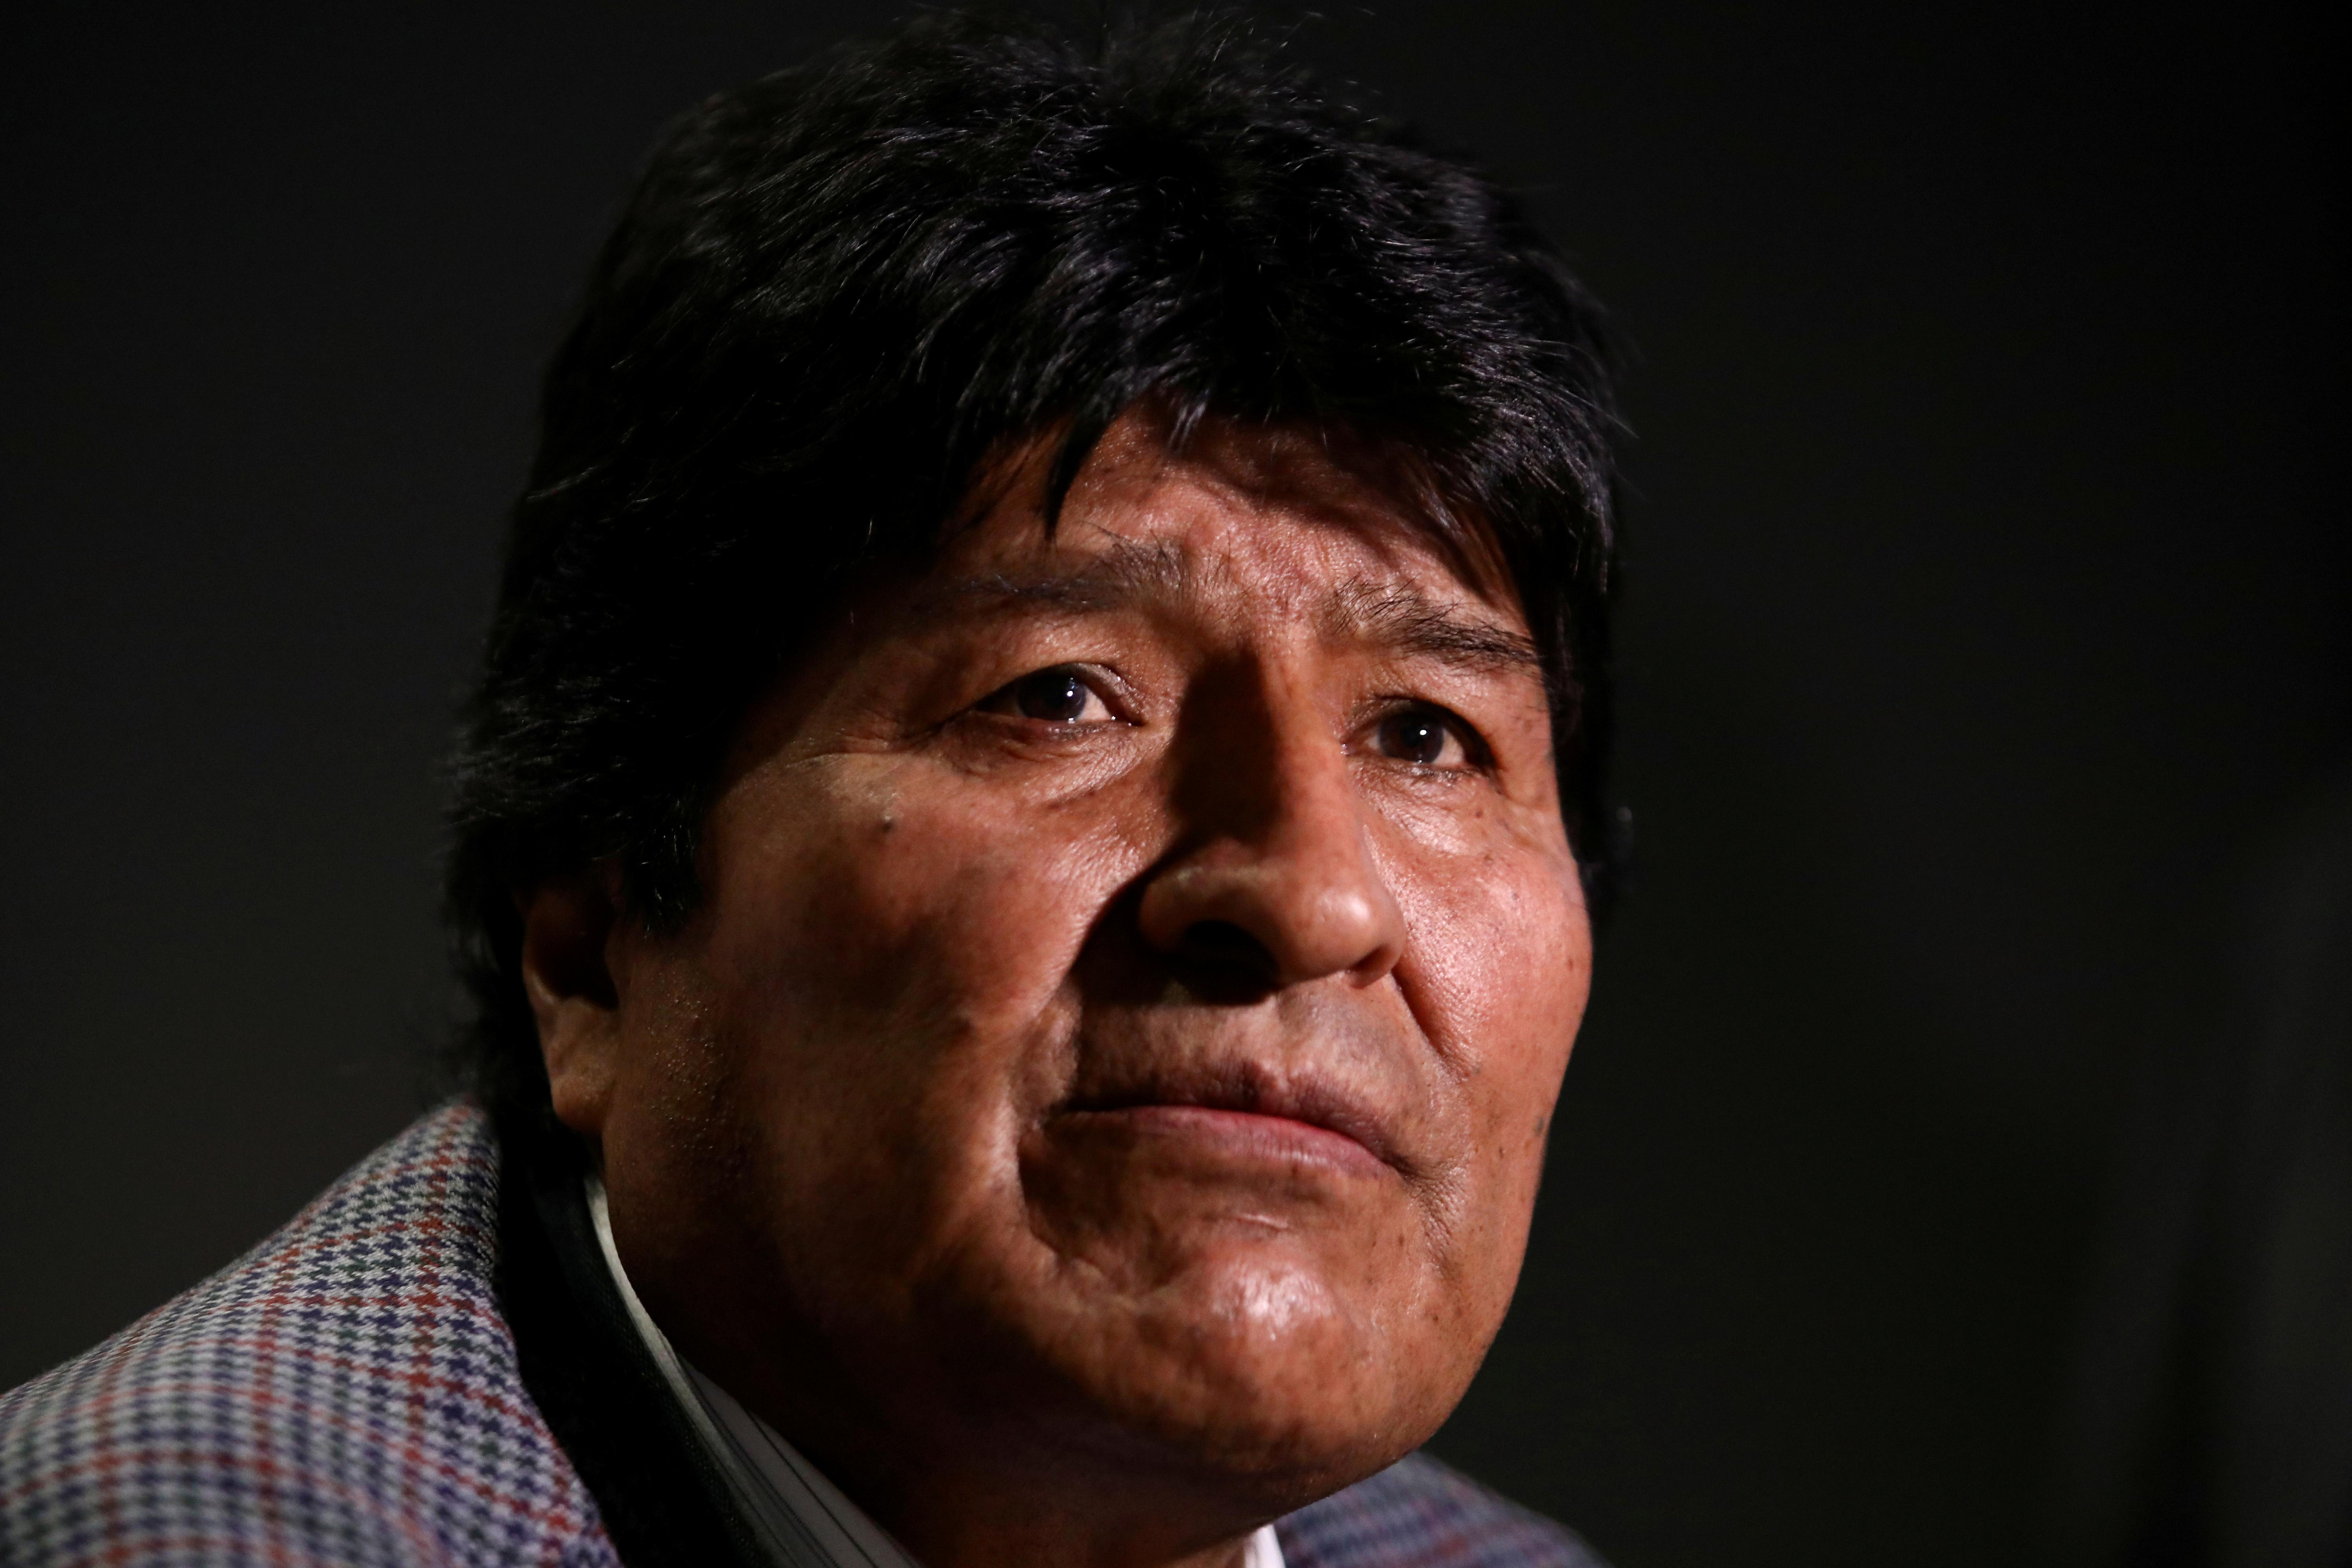 Bolivia's Morales arrives in Argentina, to get refugee status